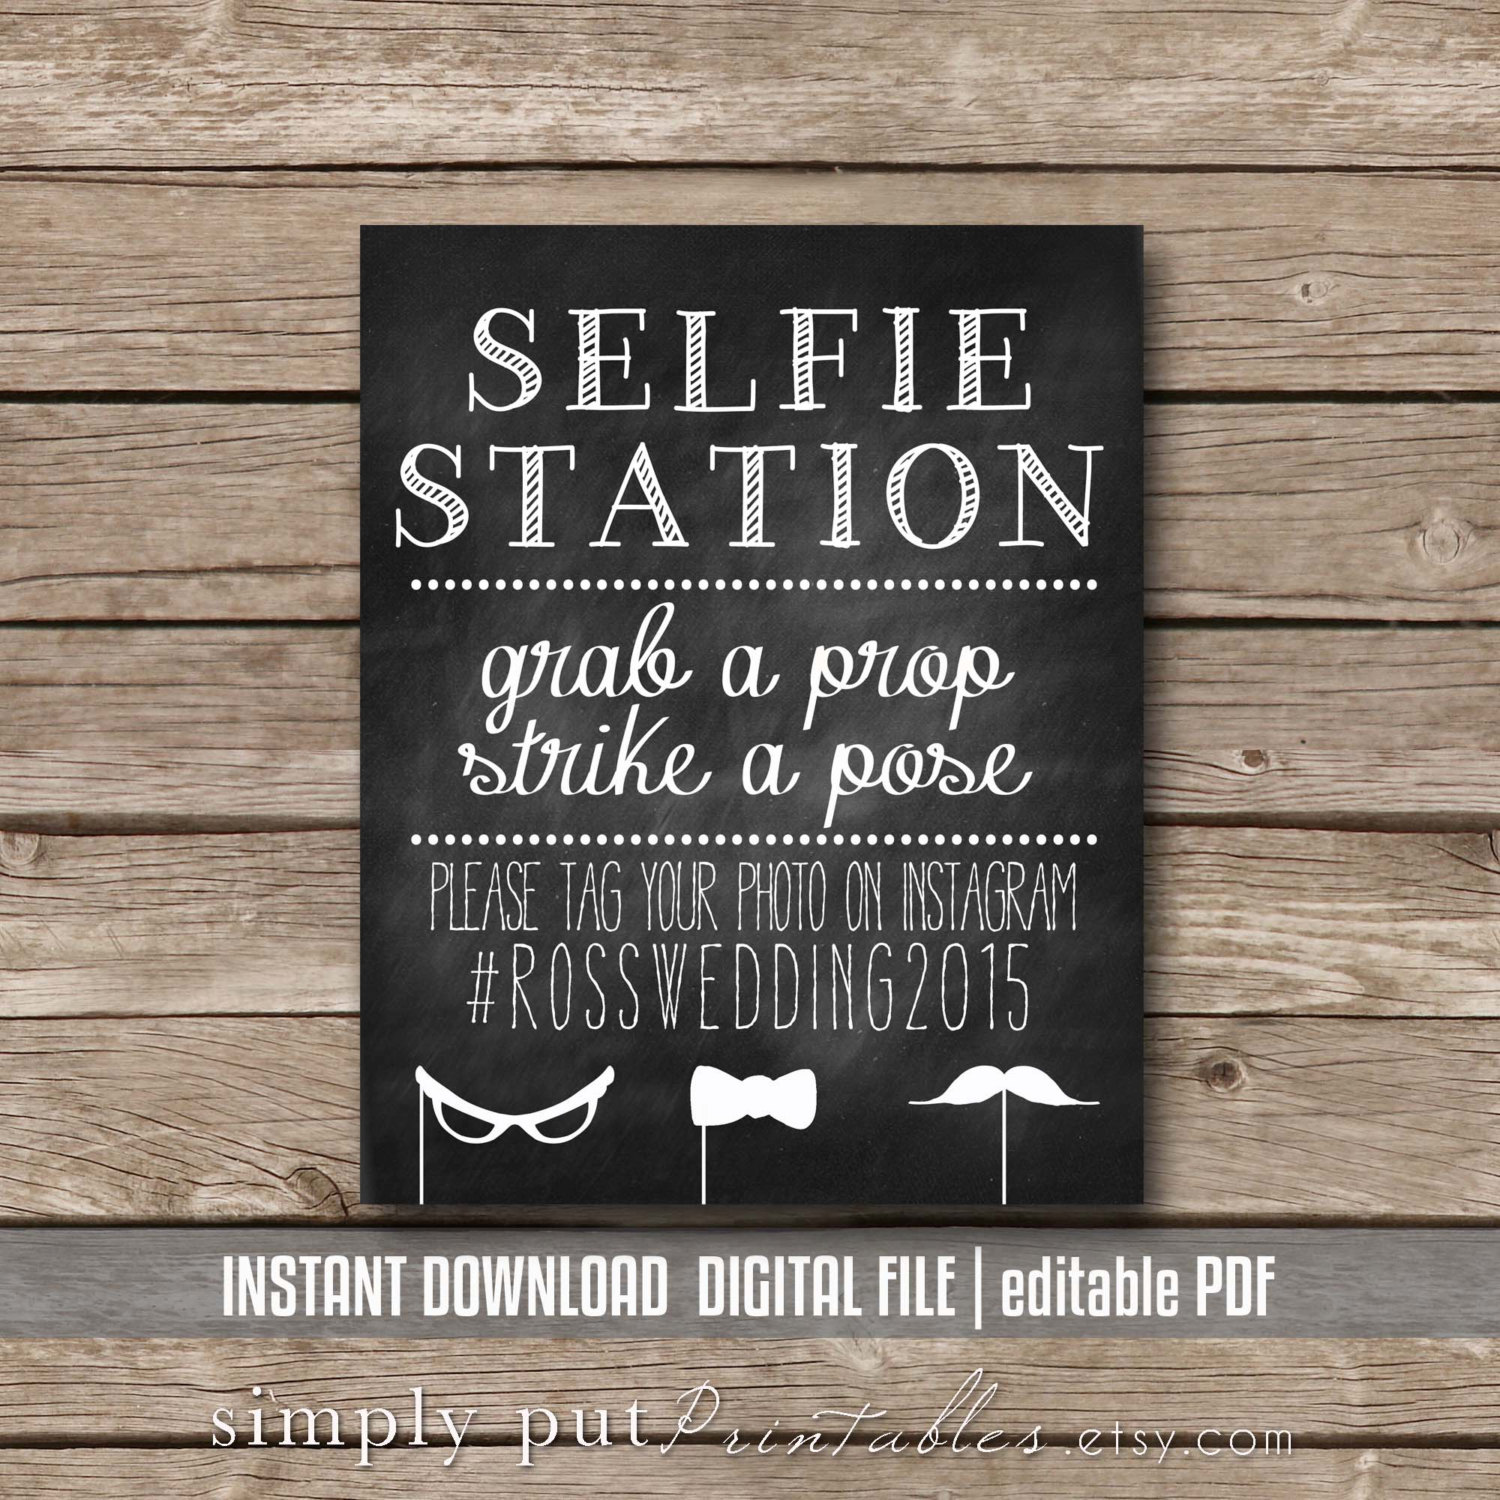 It is an image of Stupendous Selfie Station Sign Free Printable